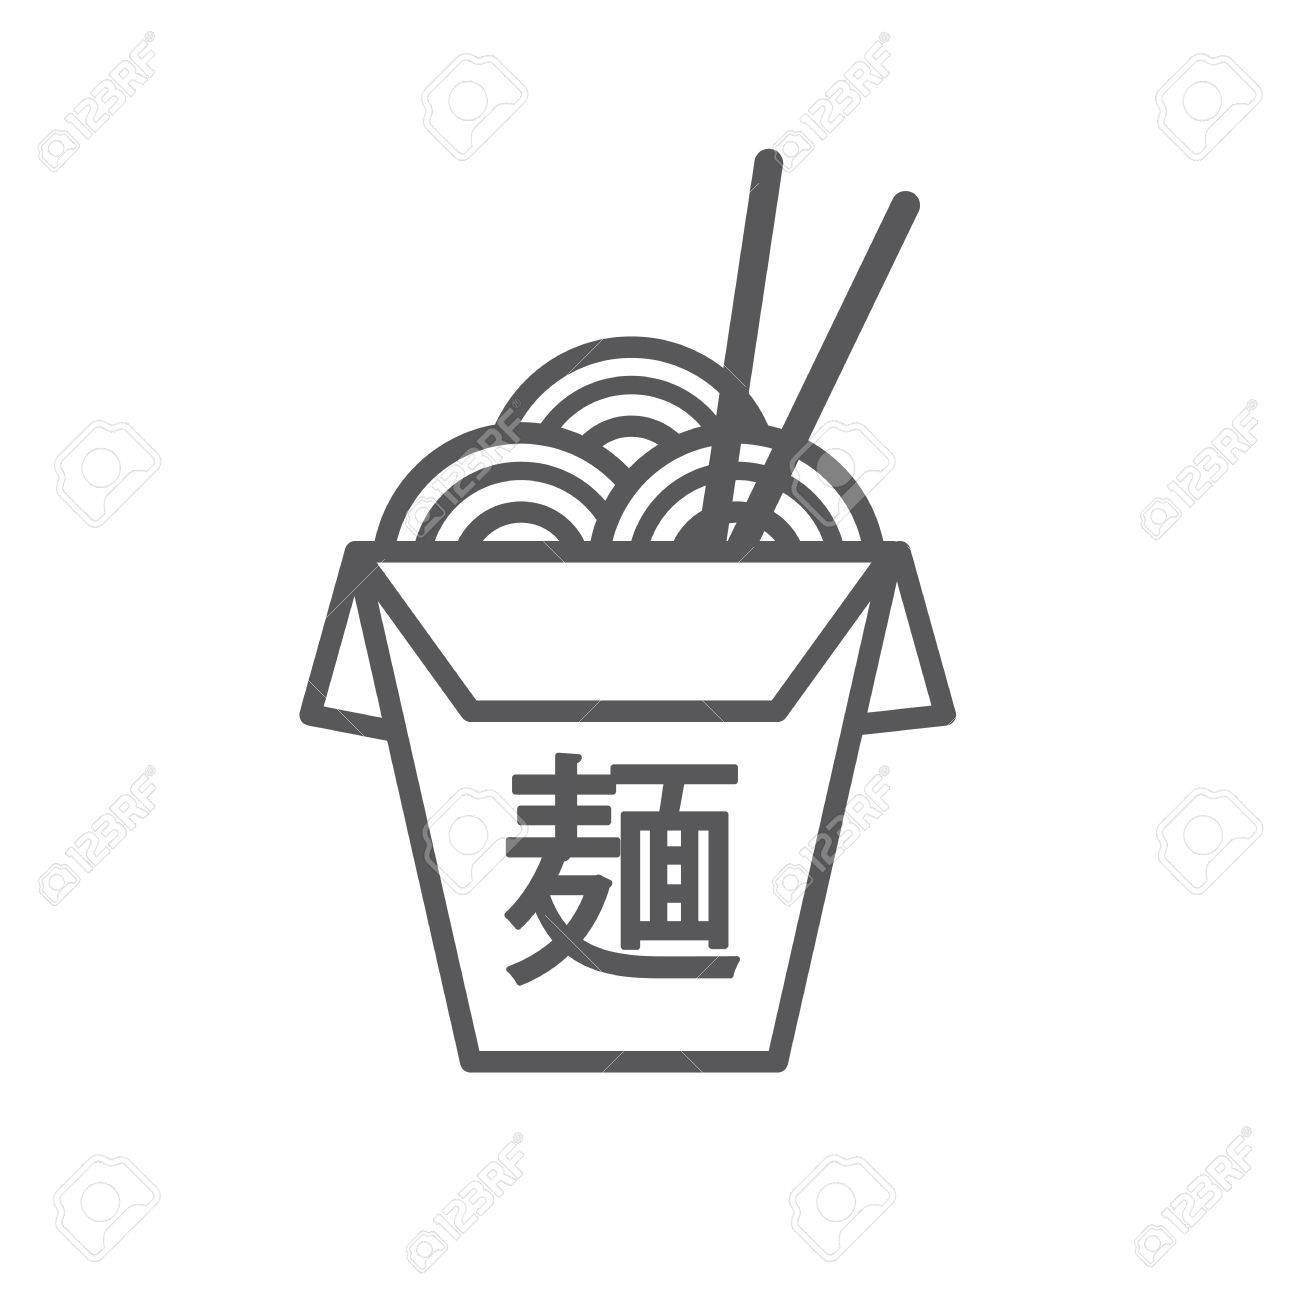 Chinese takeout box clipart 2 » Clipart Portal.